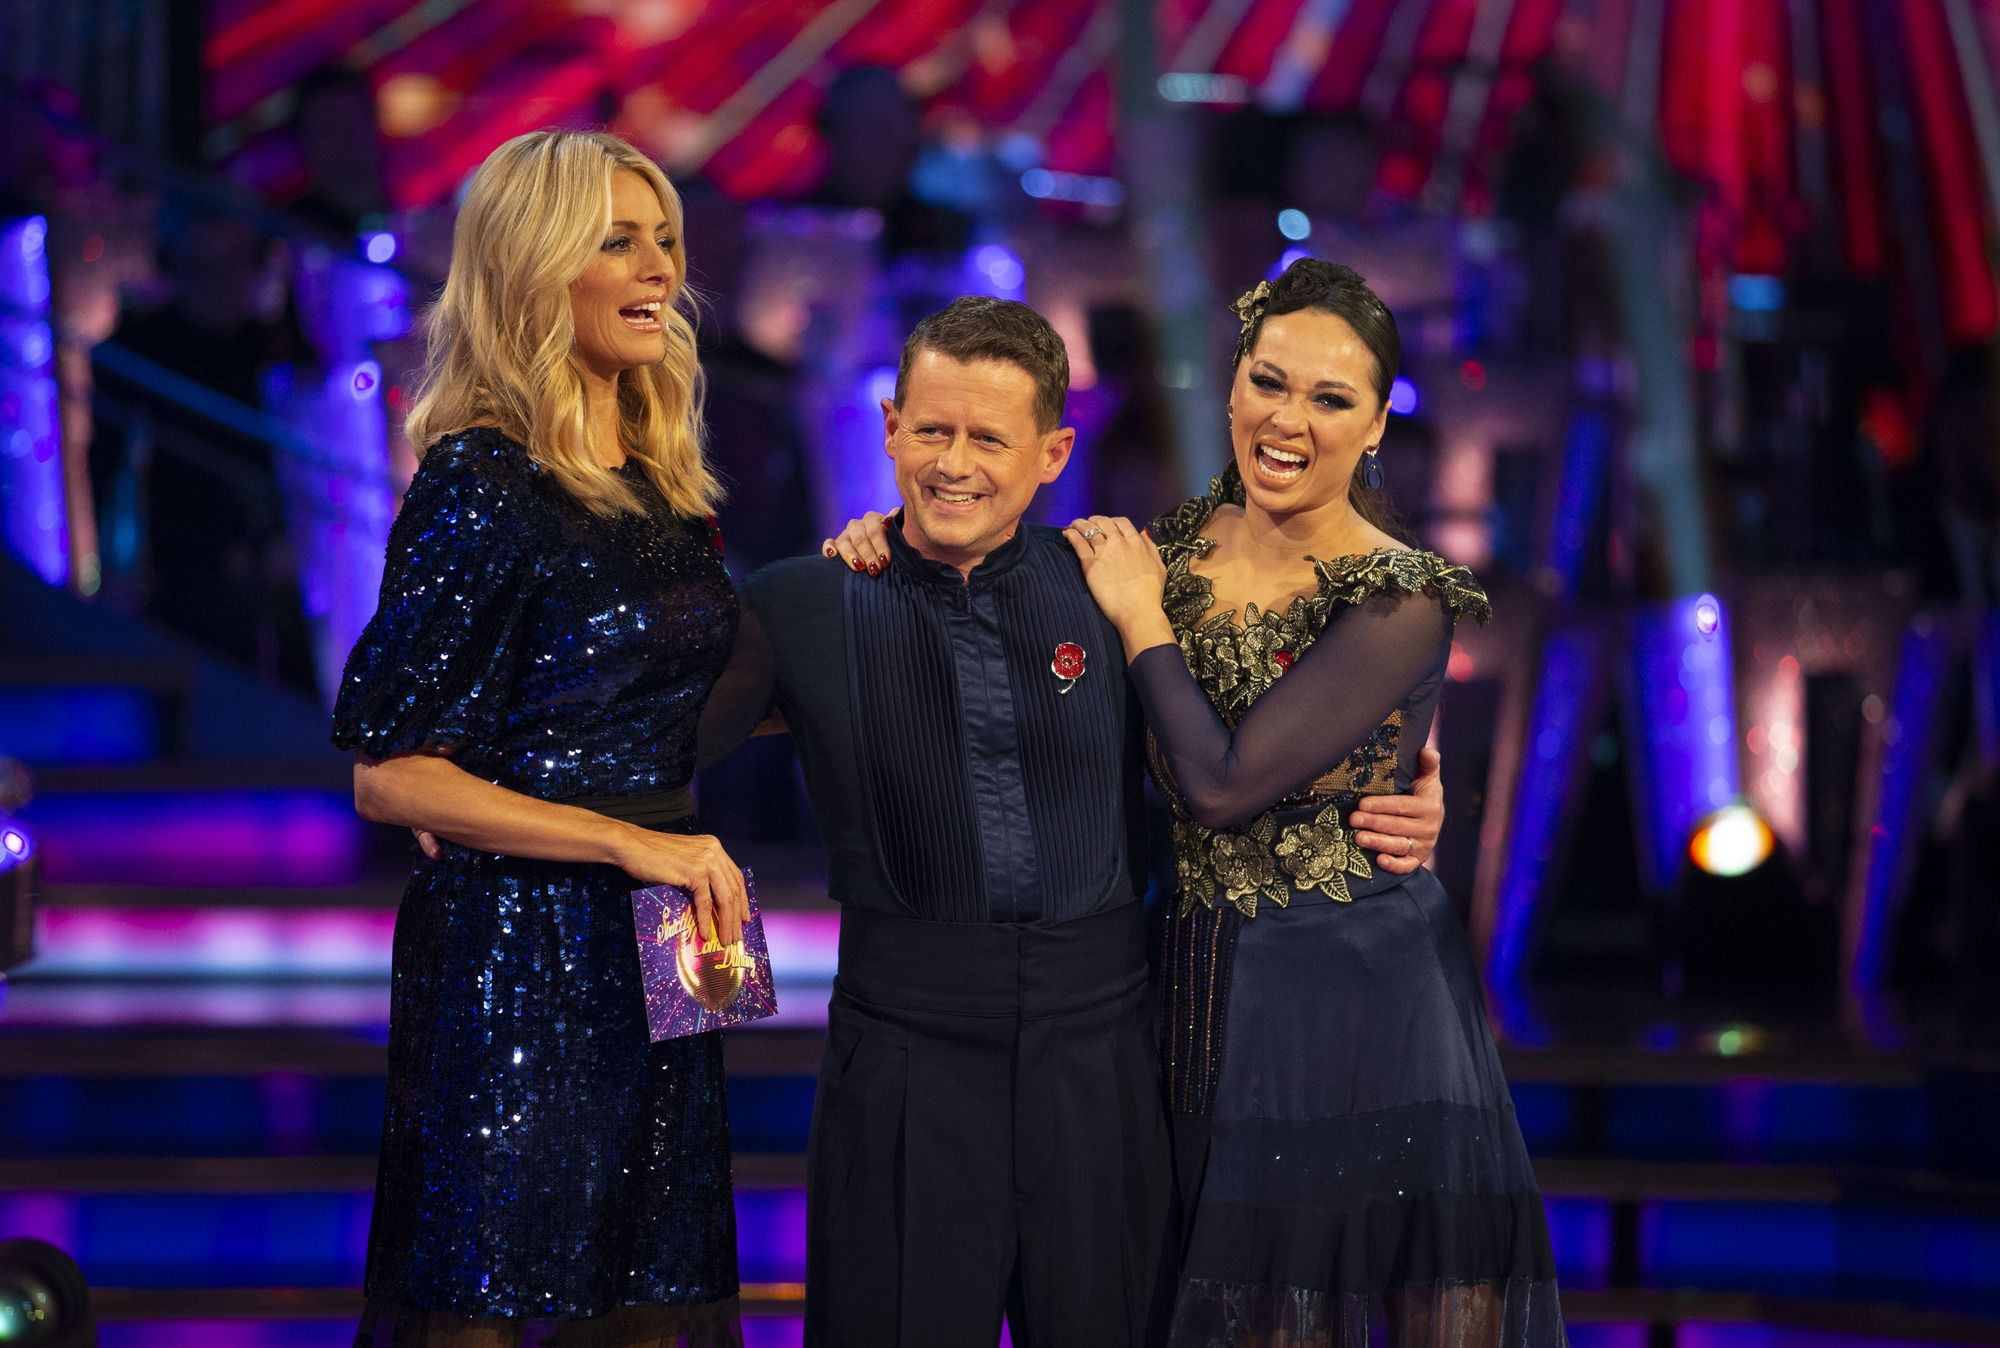 Strictly Come Dancing's Mike Bushell slams claims he was 'relieved' to get voted off